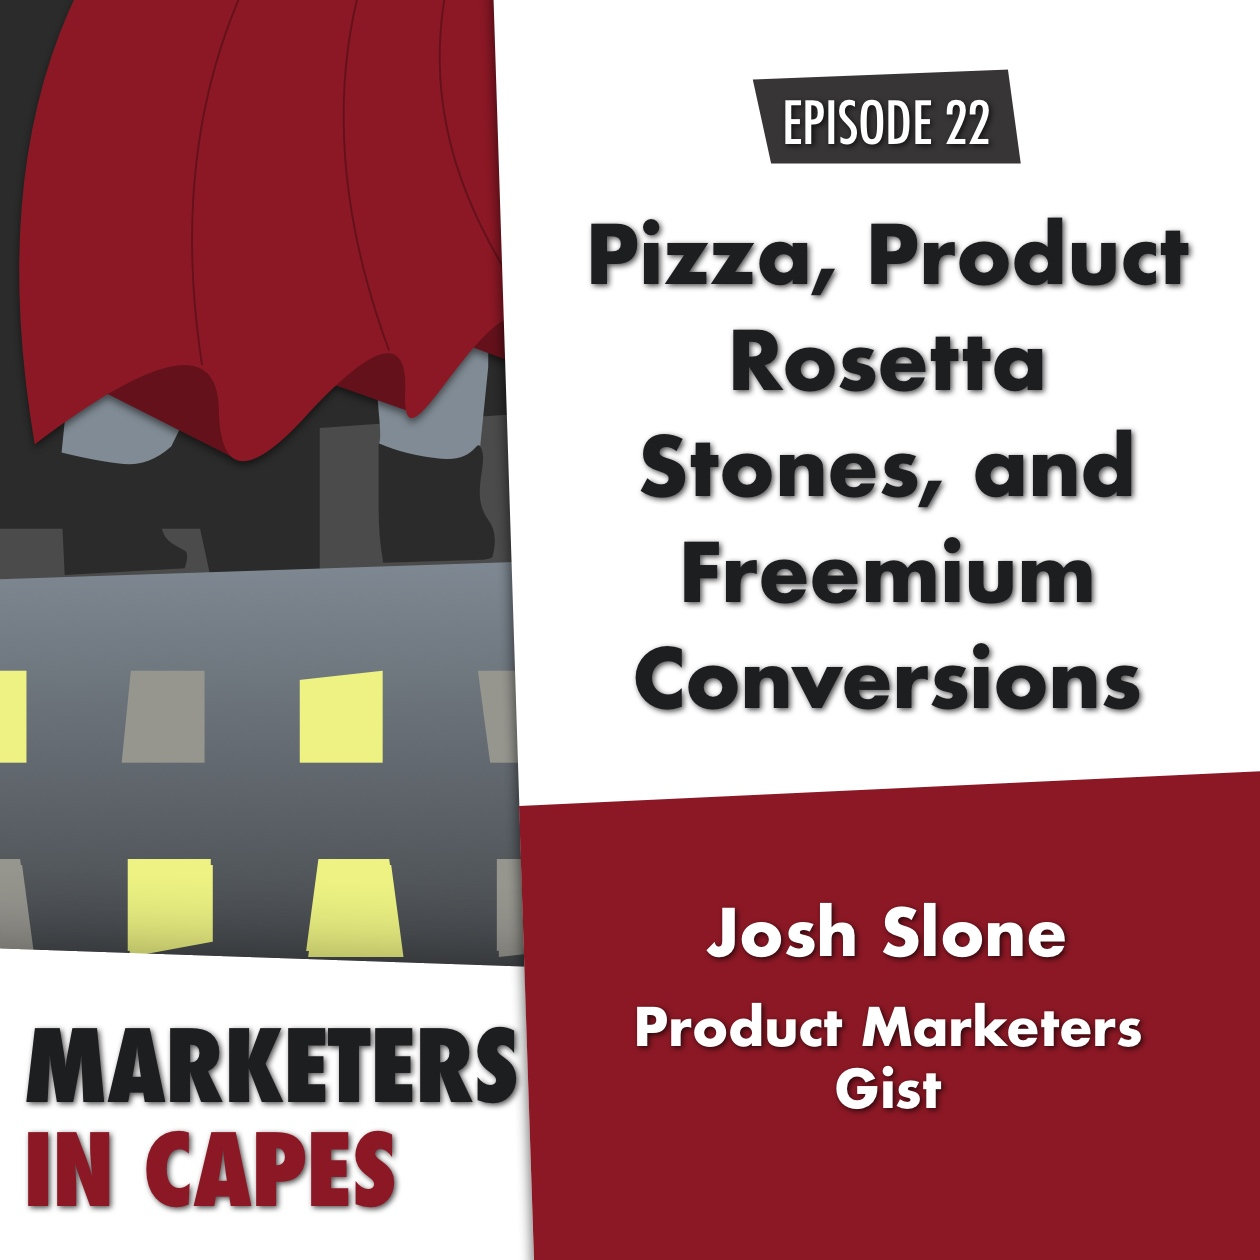 Pizza, Product Rosetta Stones, and Freemium Conversions with Gist's Josh Slone